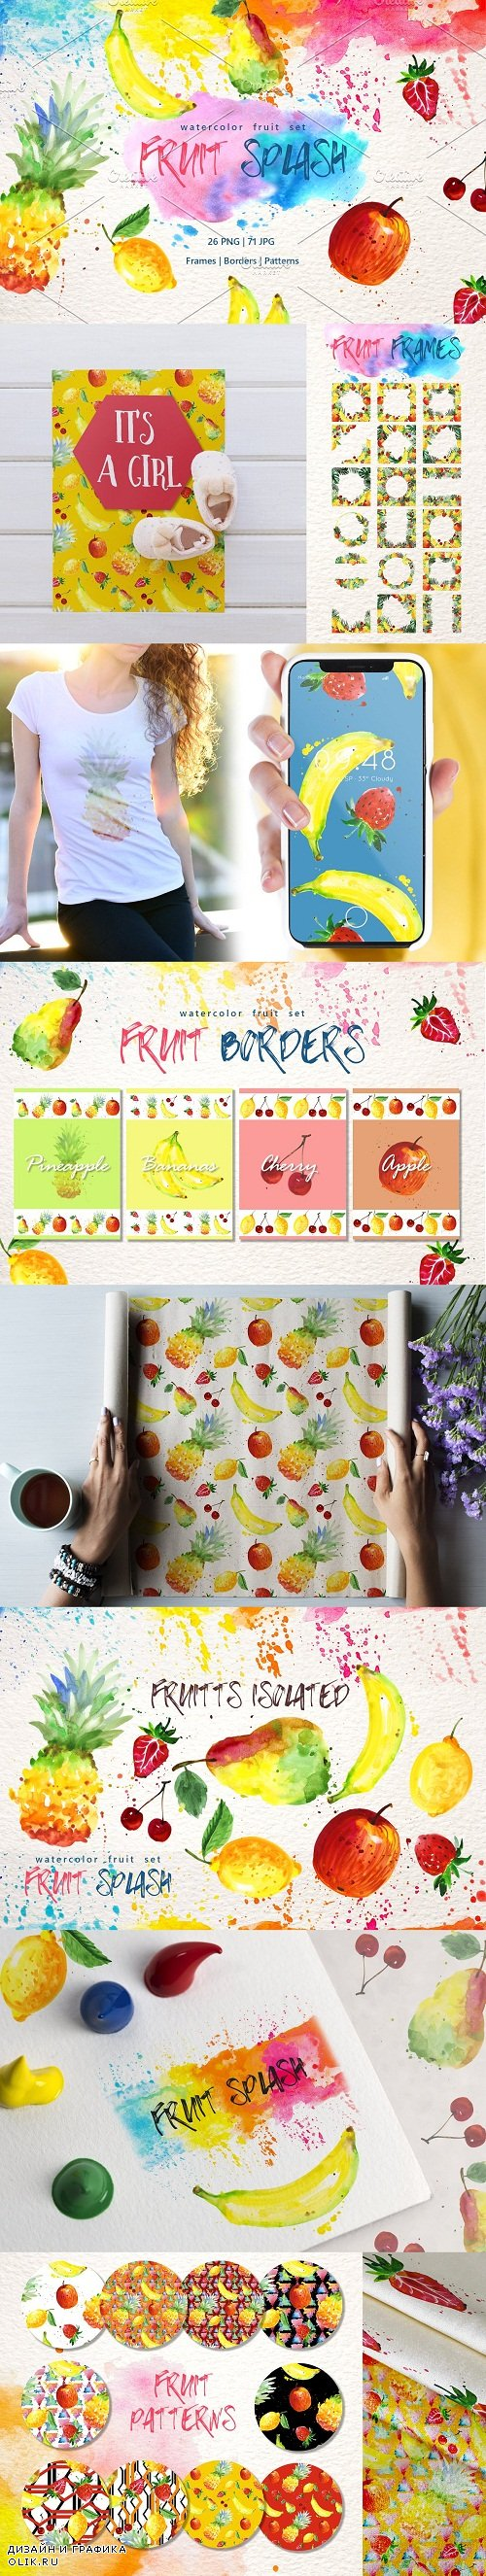 Watercolor fruits PNG set - 3102676